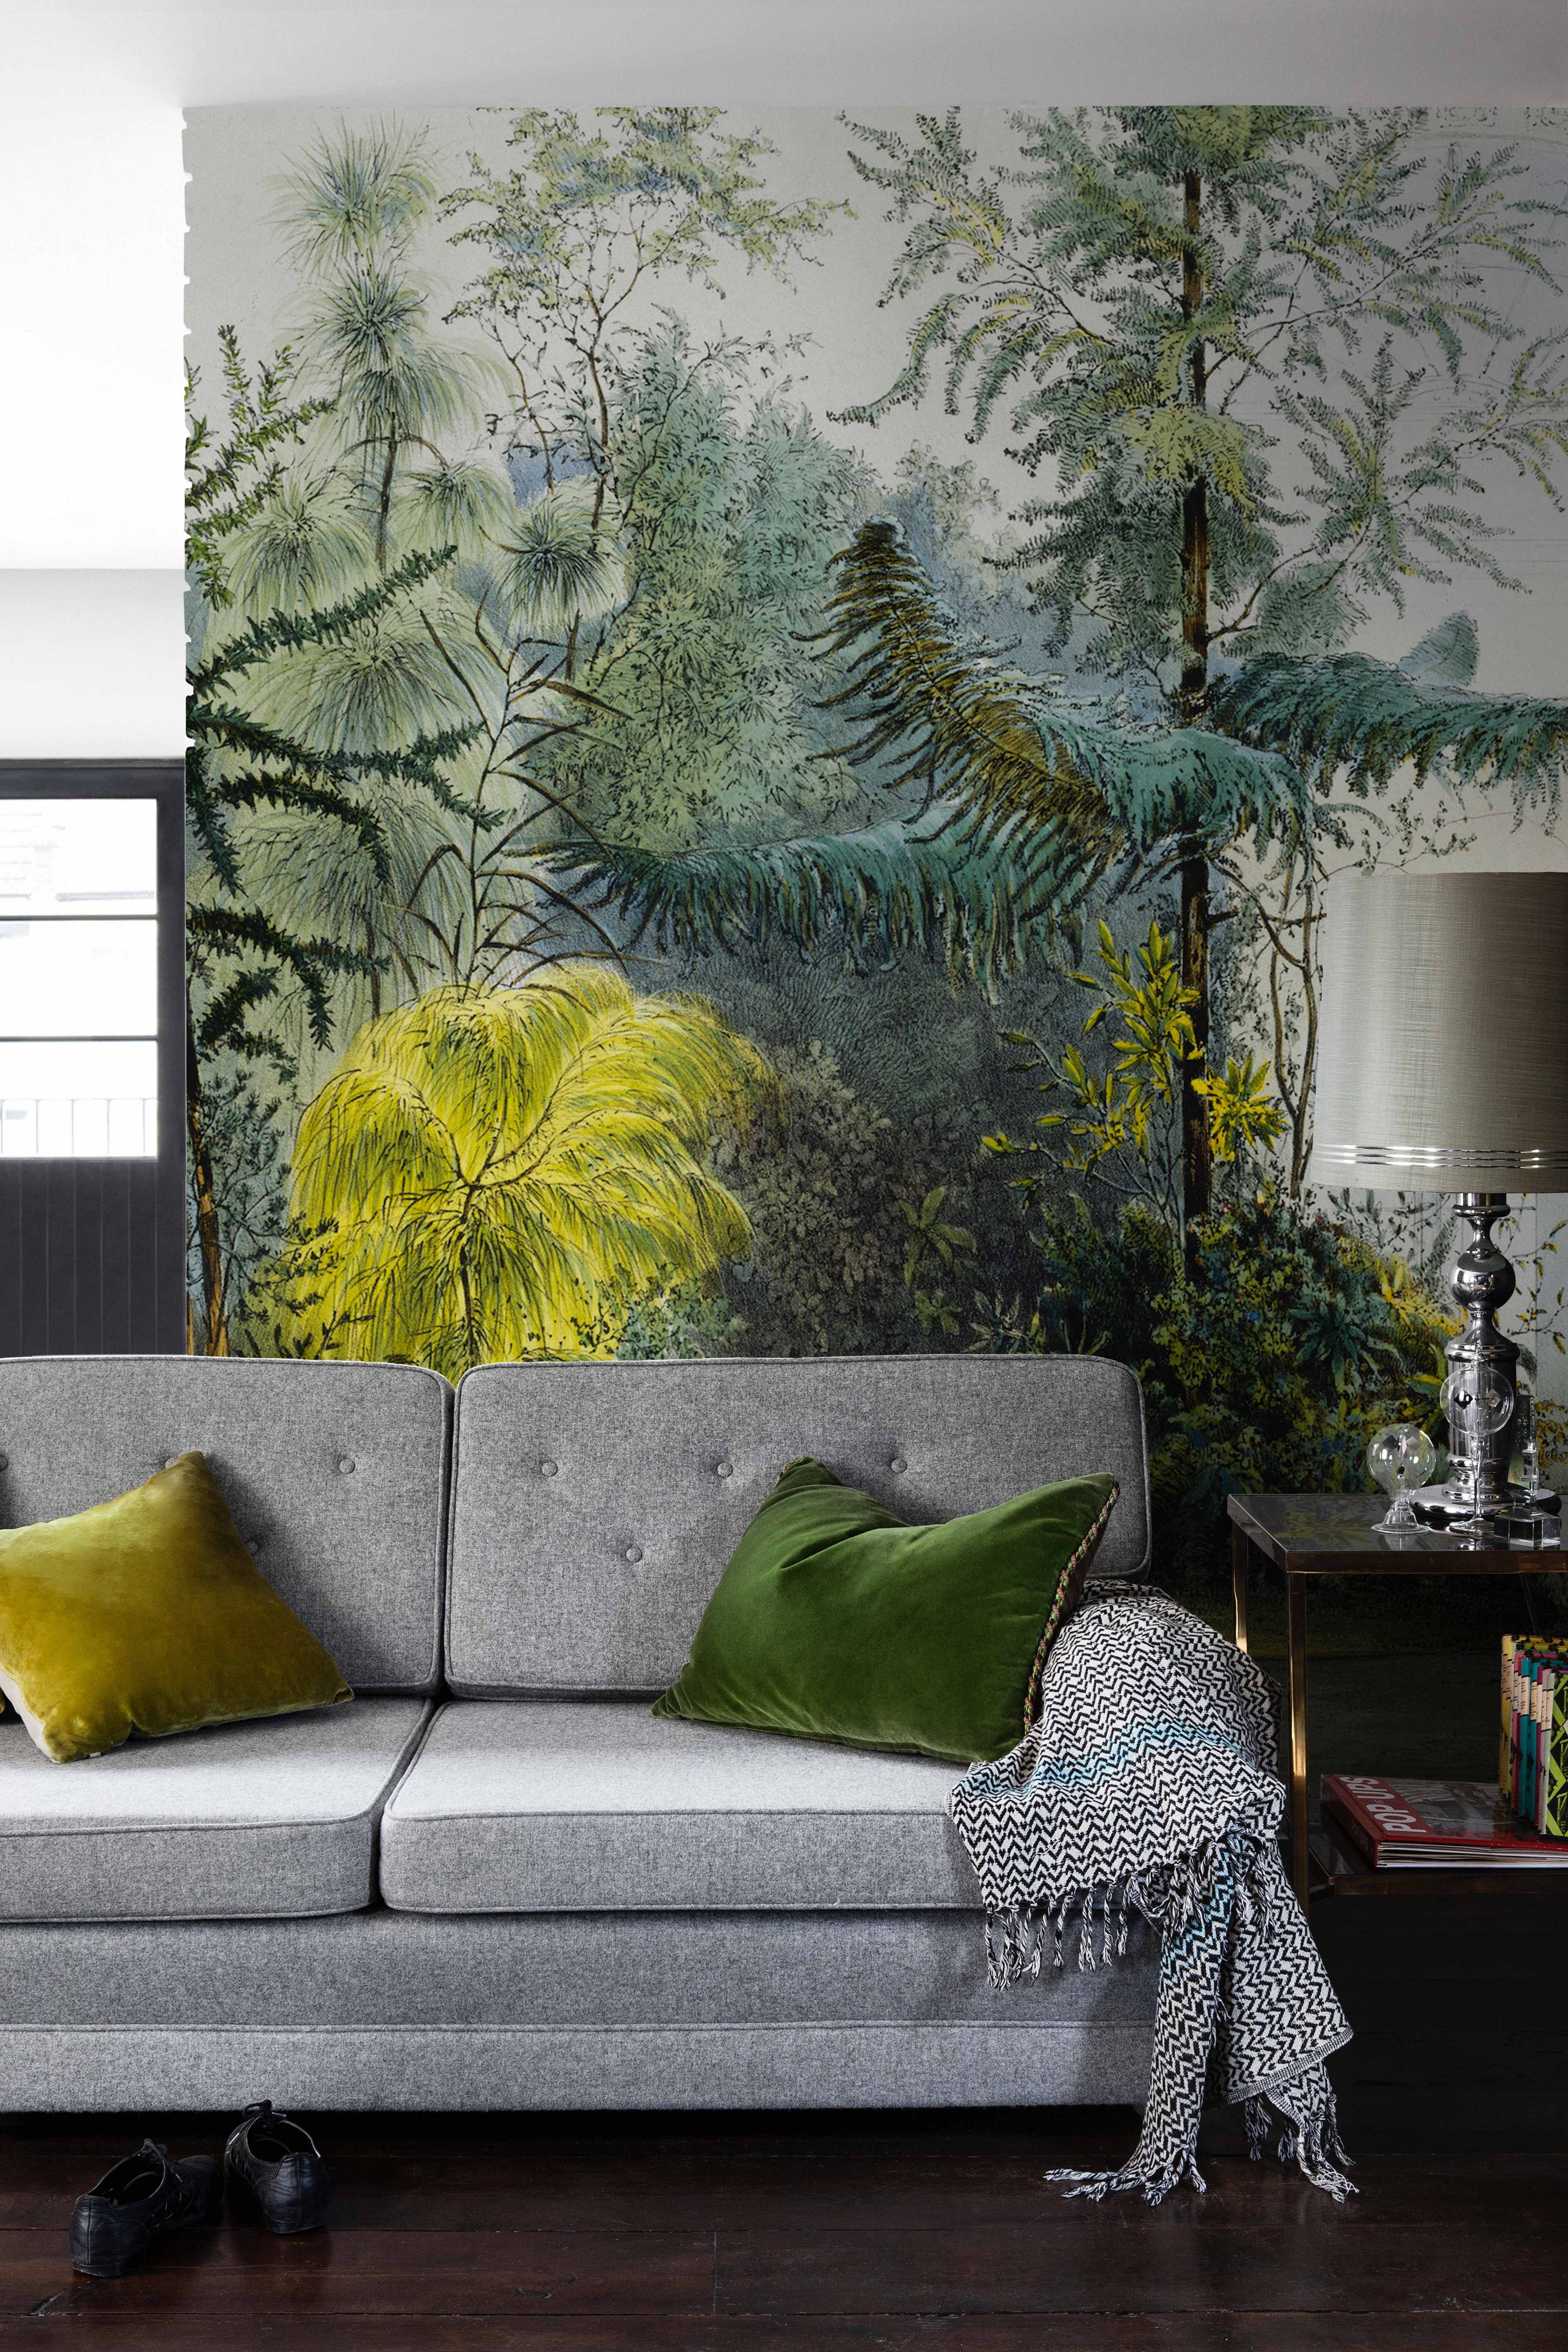 Wall Murals Home Decor The Best Murals And Mural Style